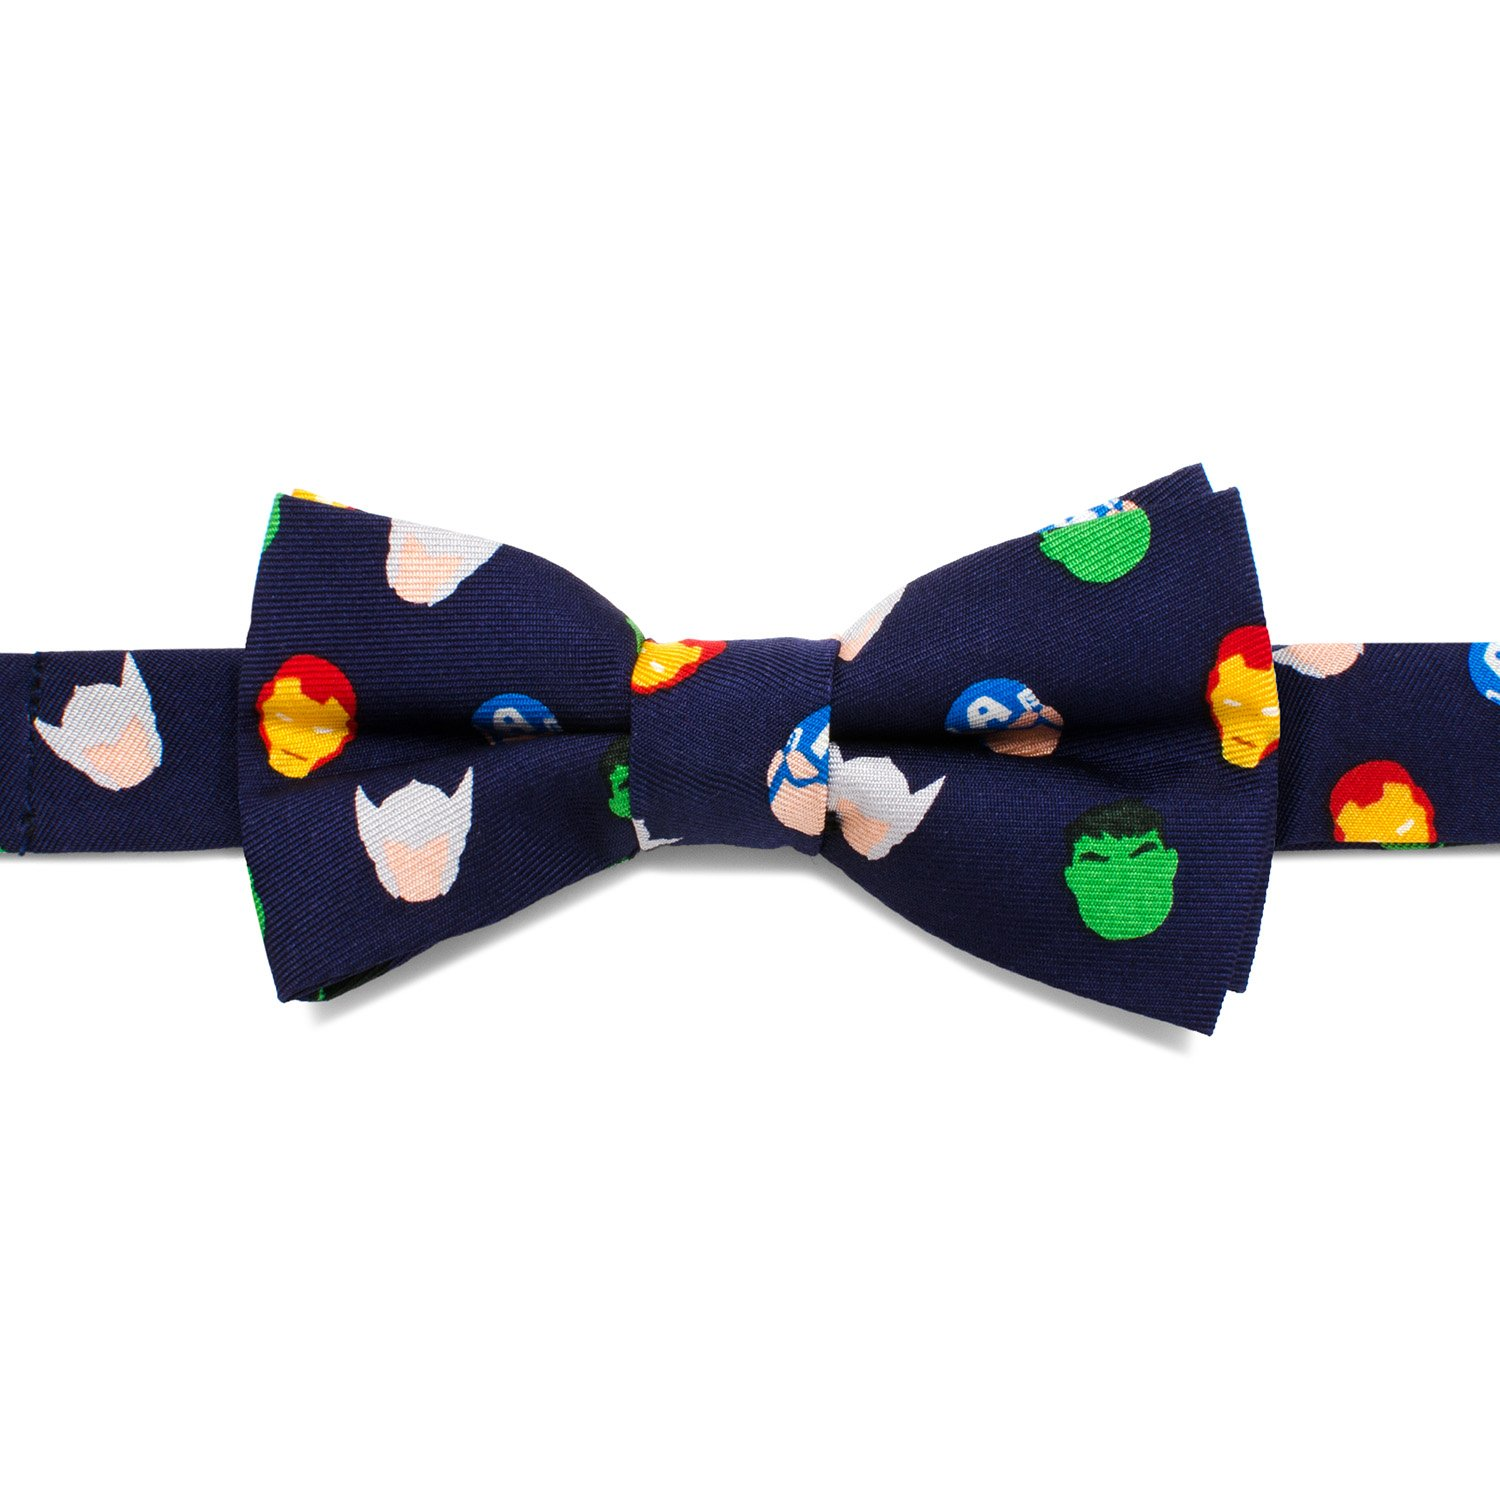 Cufflinks Inc. Boy's Avengers Bow Tie (Little Kids) Officially Licensed MV-AVNGR-BL-KBT